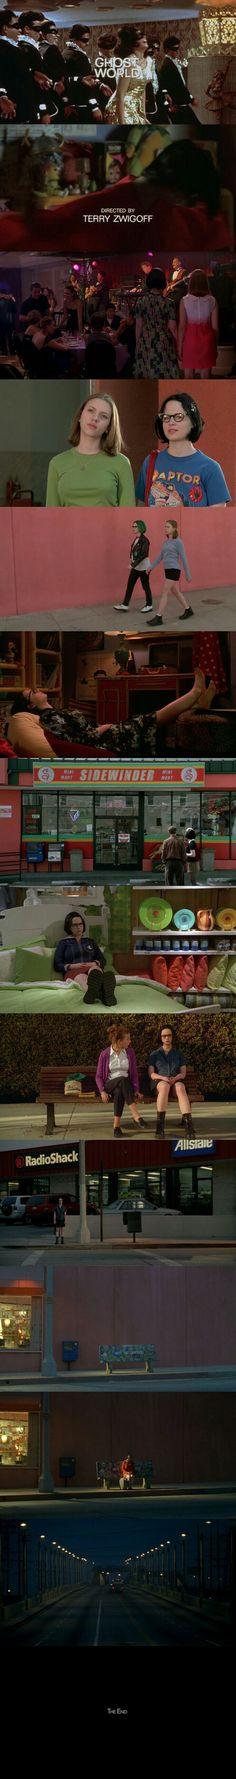 Ghost World (2001) Directed by Terry Zwigoff.